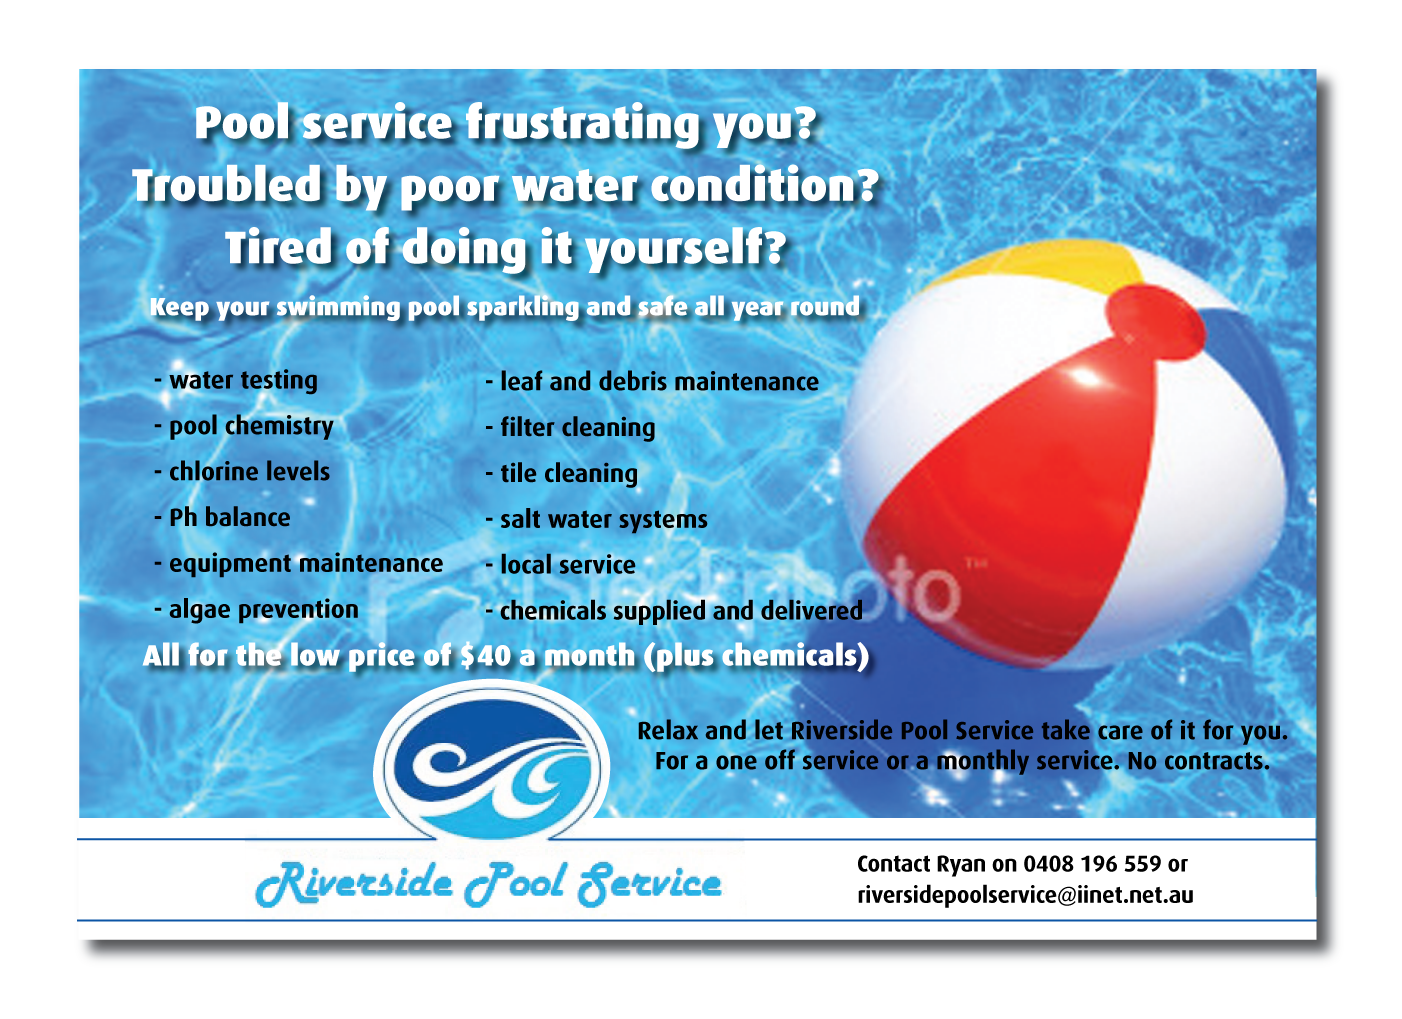 Serious Modern Pool Service Flyer Design For A Company By Tony Stevens Design 643952